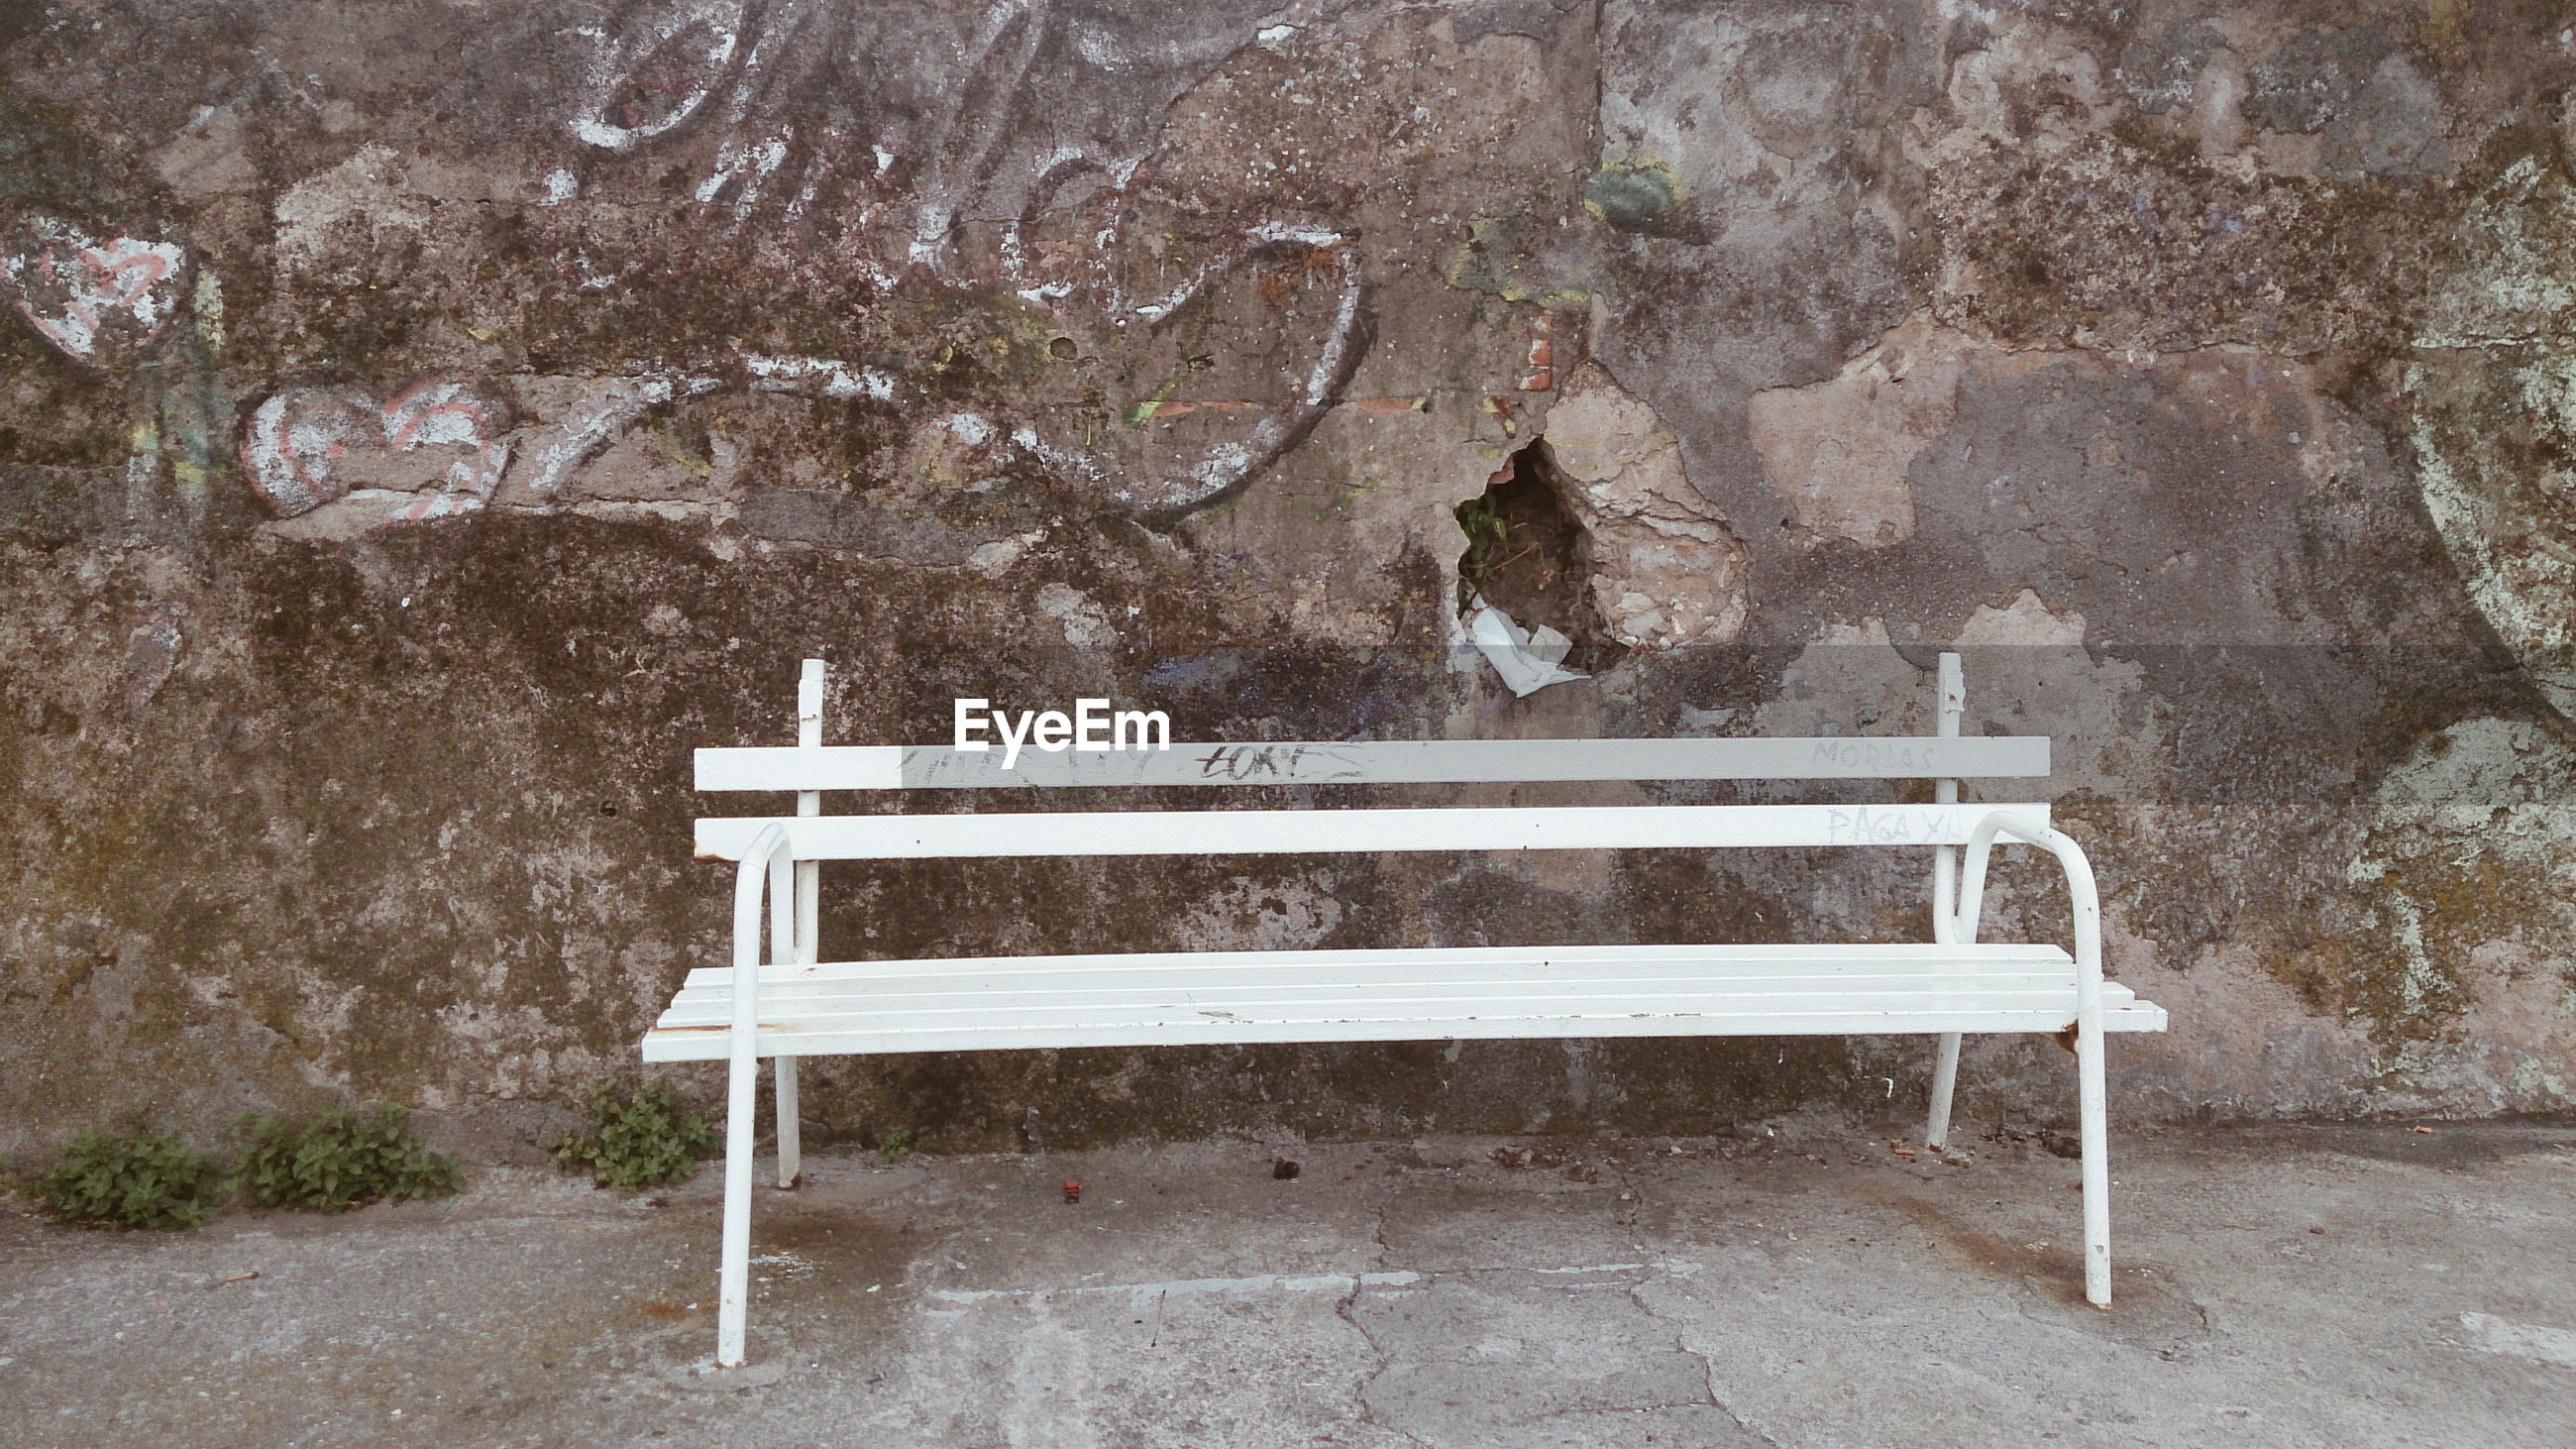 EMPTY SEAT AGAINST TREES